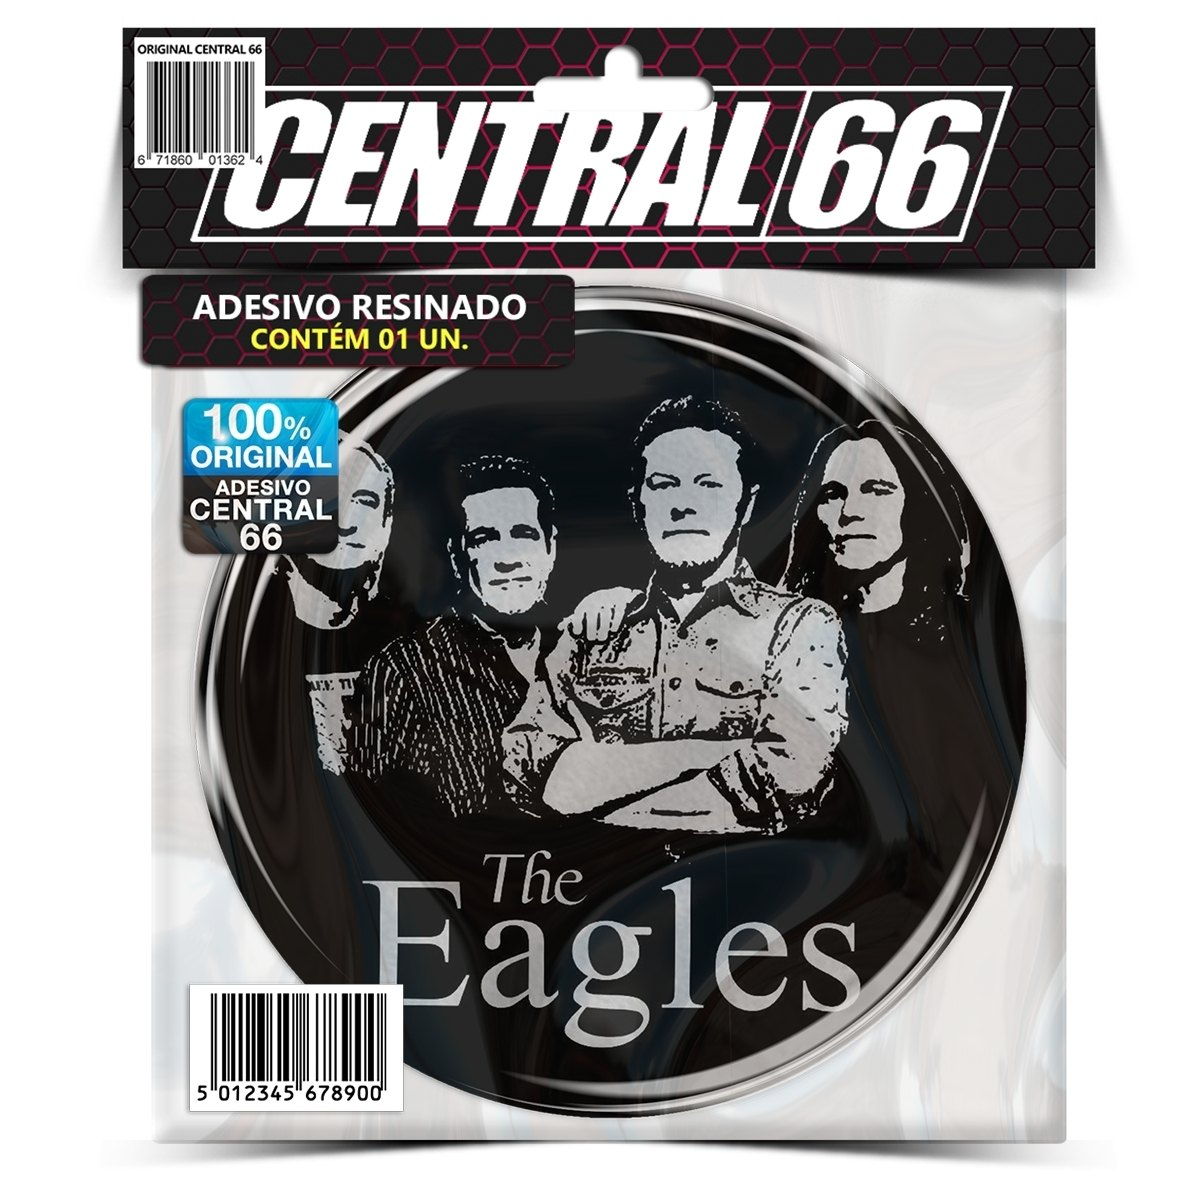 Adesivo Redondo The Eagles – Central 66